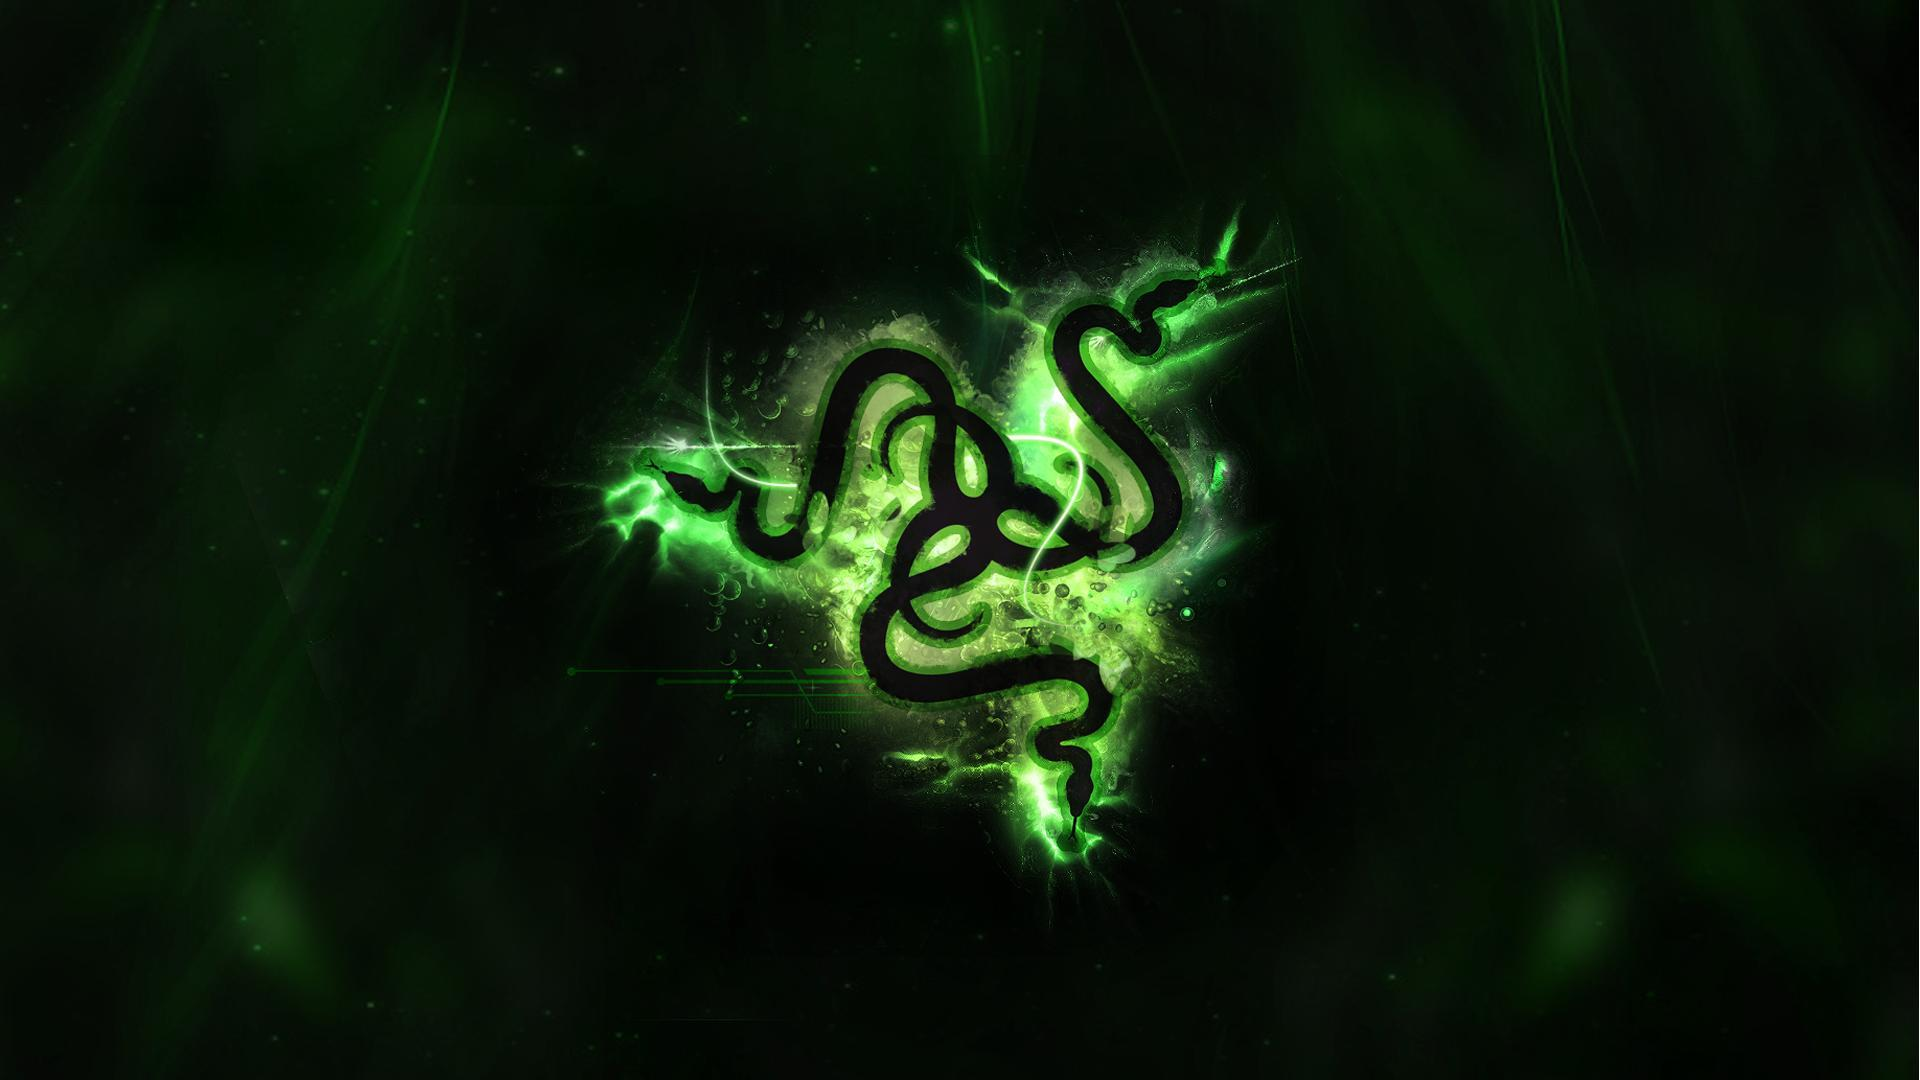 razer wallpaper 1920x1080 red - photo #14